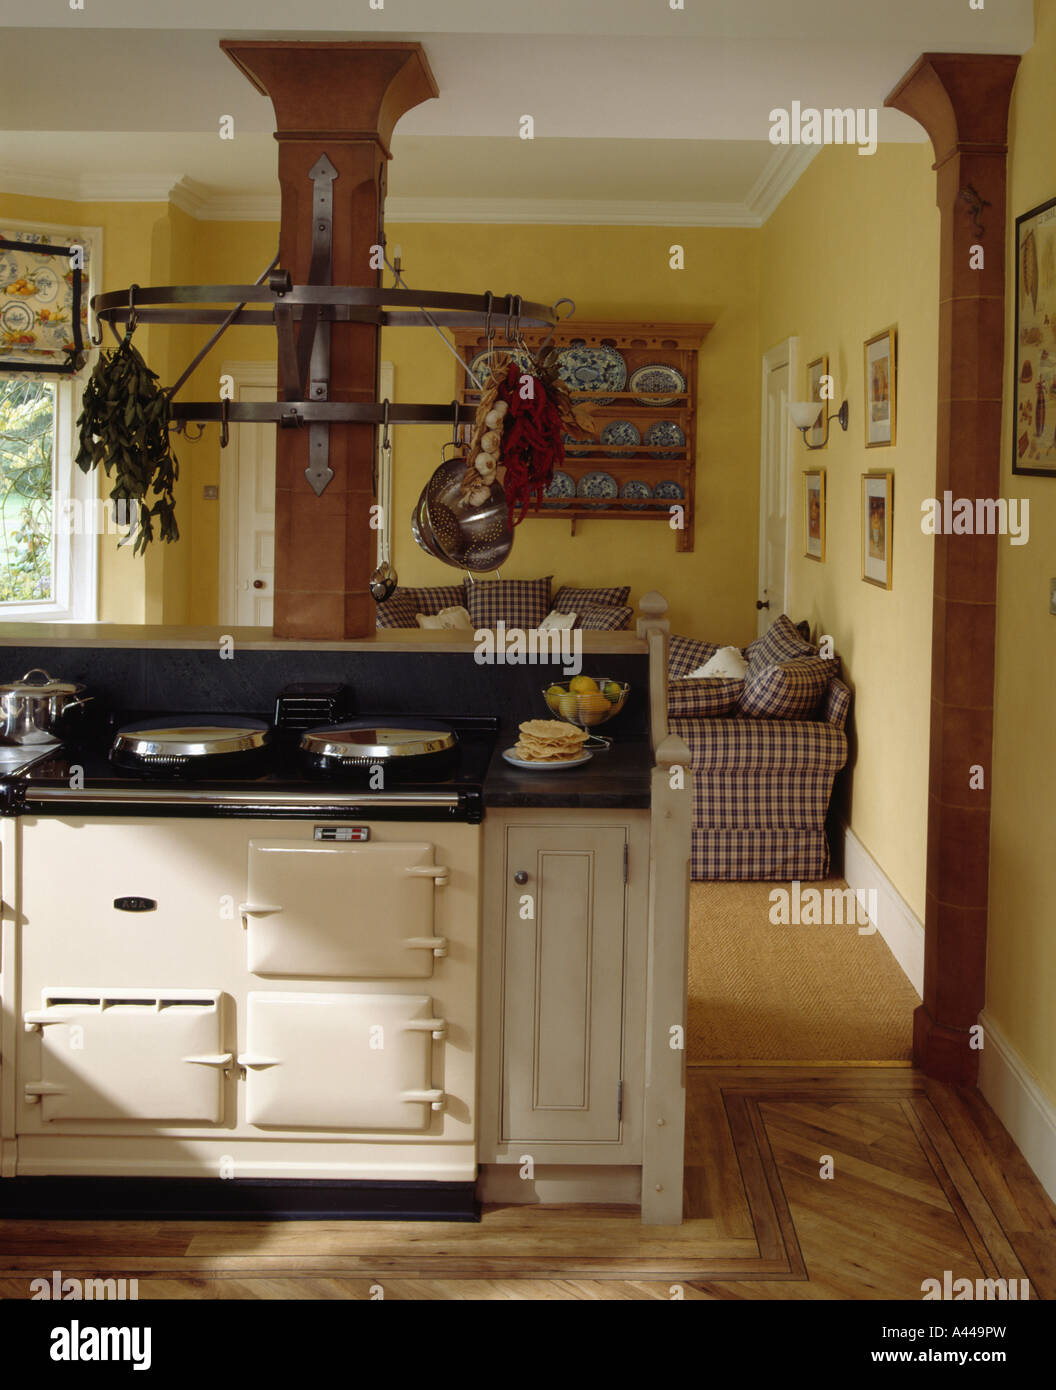 Aga Kitchen Appliances Cream Aga Cooker In Large Openplan Country Kitchen With Sofa Stock